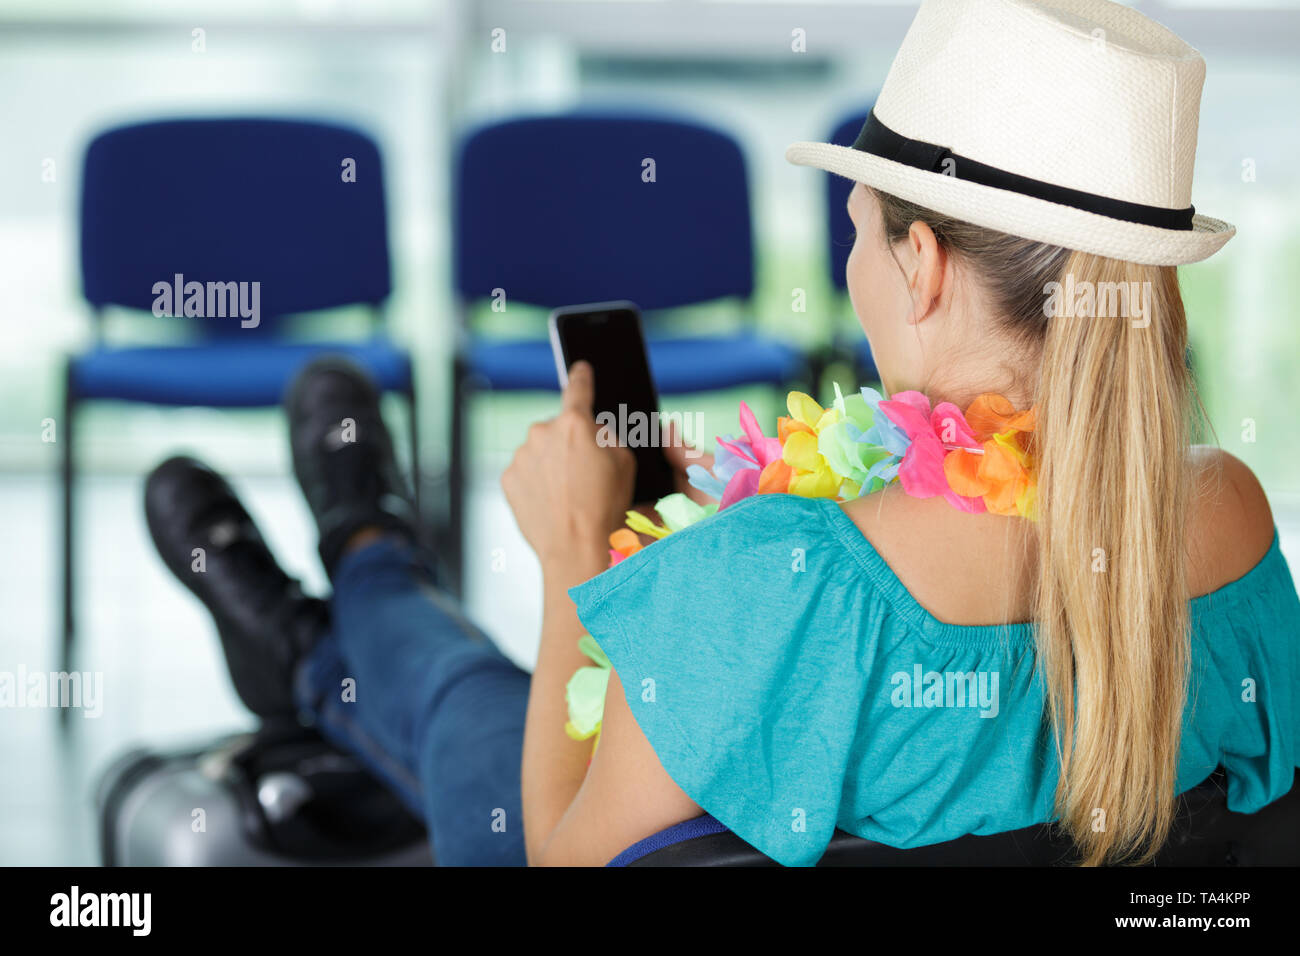 woman using her phone in airport - Stock Image